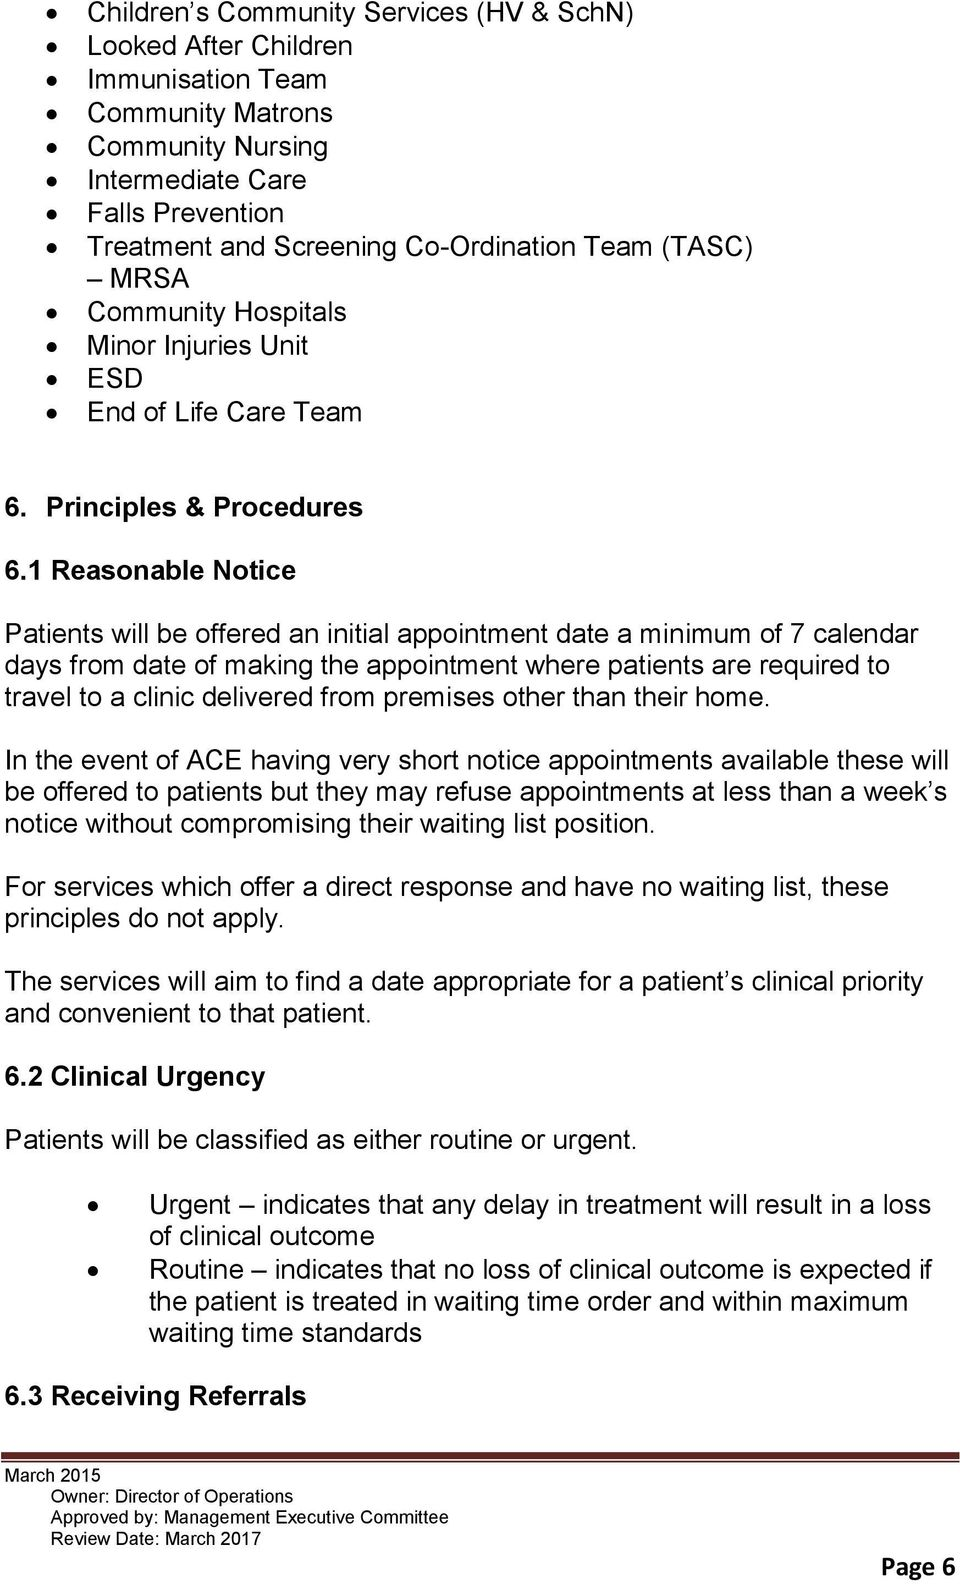 1 Reasonable Notice Patients will be offered an initial appointment date a minimum of 7 calendar days from date of making the appointment where patients are required to travel to a clinic delivered